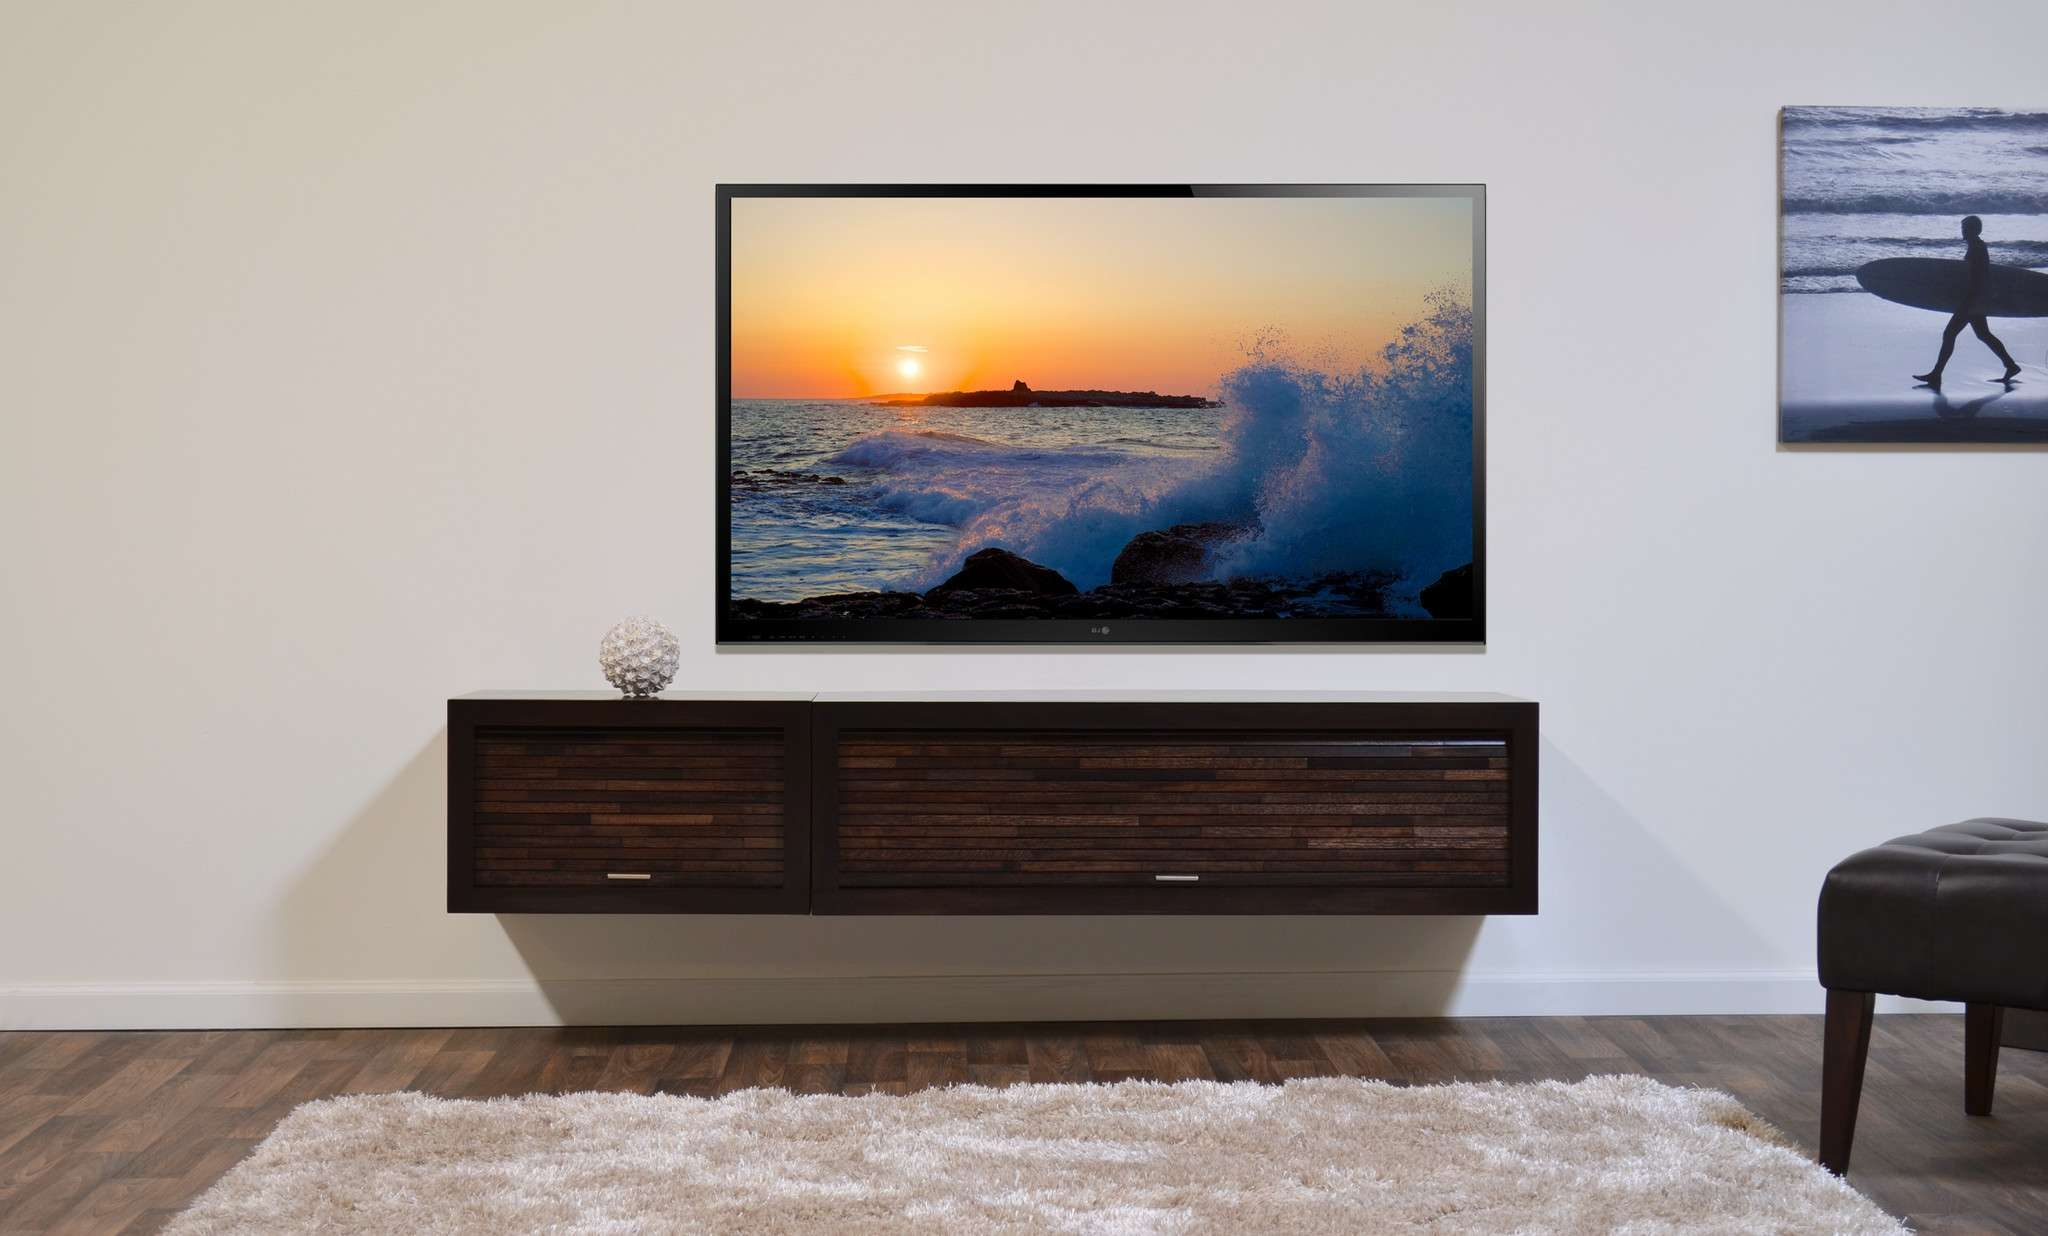 Rectangular Led Tv On Over Brown Wooden Cabinet On White Wall In White Wall Mounted Tv Stands (View 7 of 15)